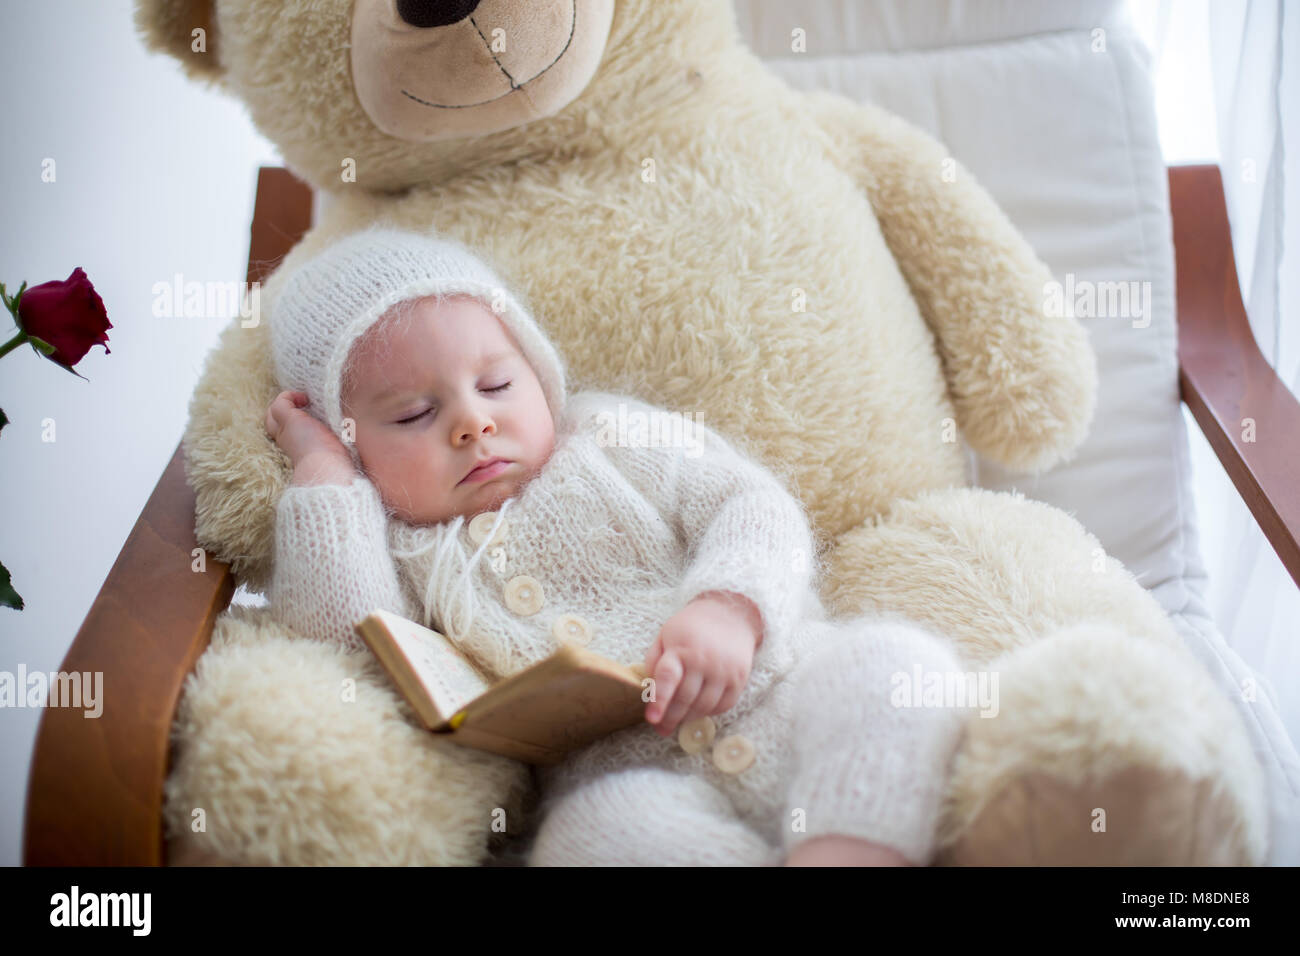 6afc6016b Sweet little baby boy, sleeping with huge teddy bear in big armchair,  littlr table with vase with roses flowers next to him